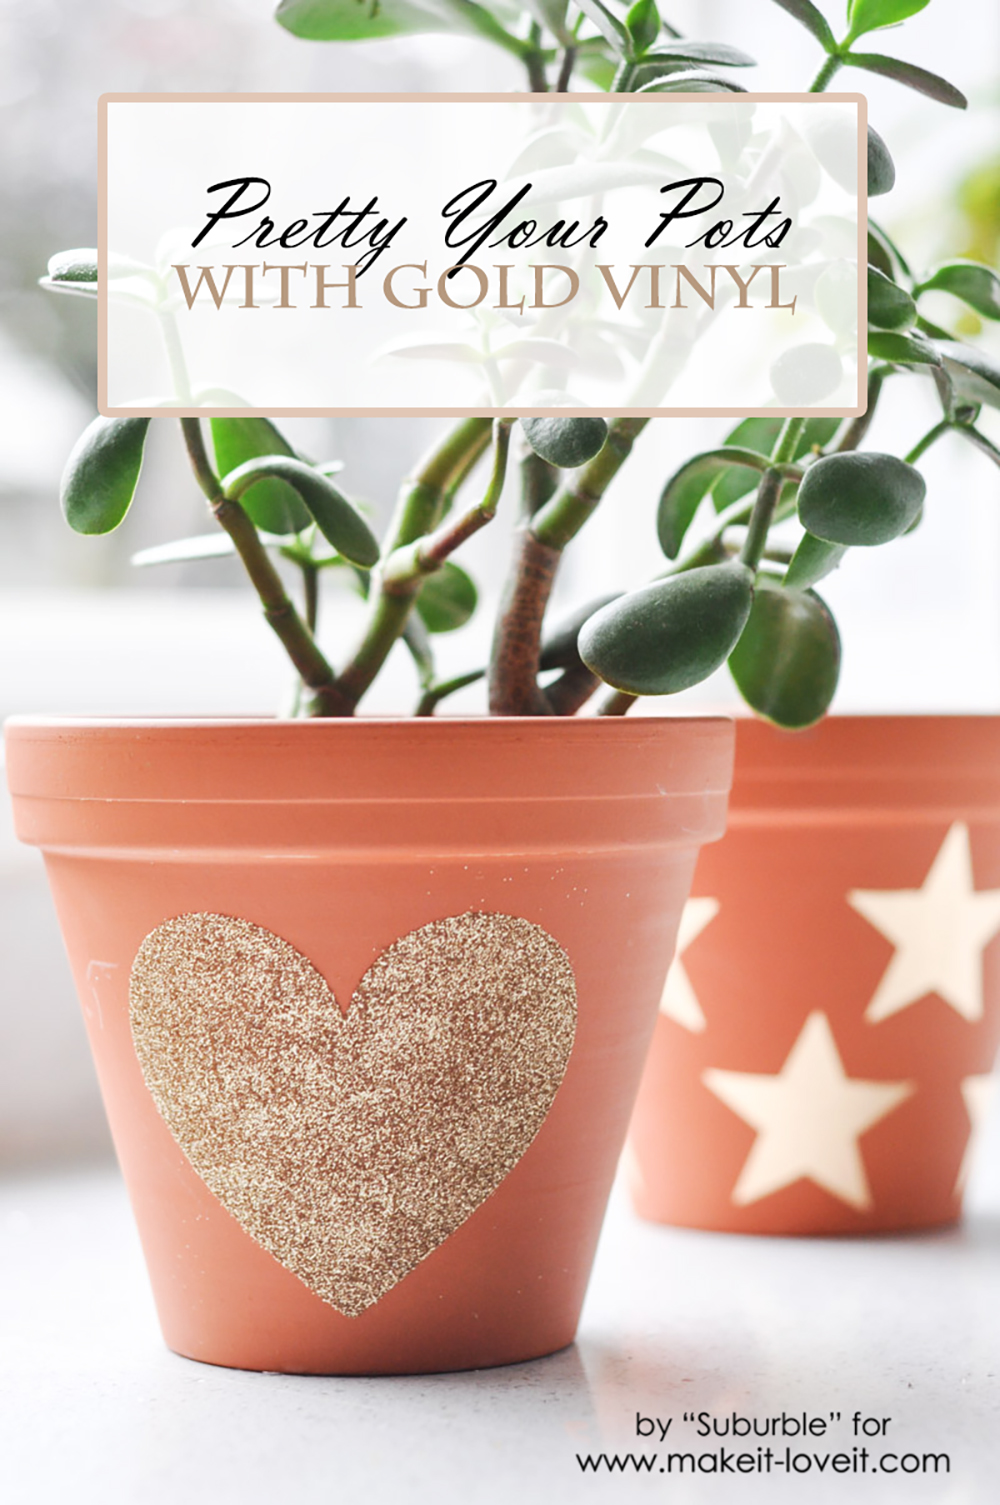 Getting Glitzy With Flower Pots – dress up your pots with glitter!